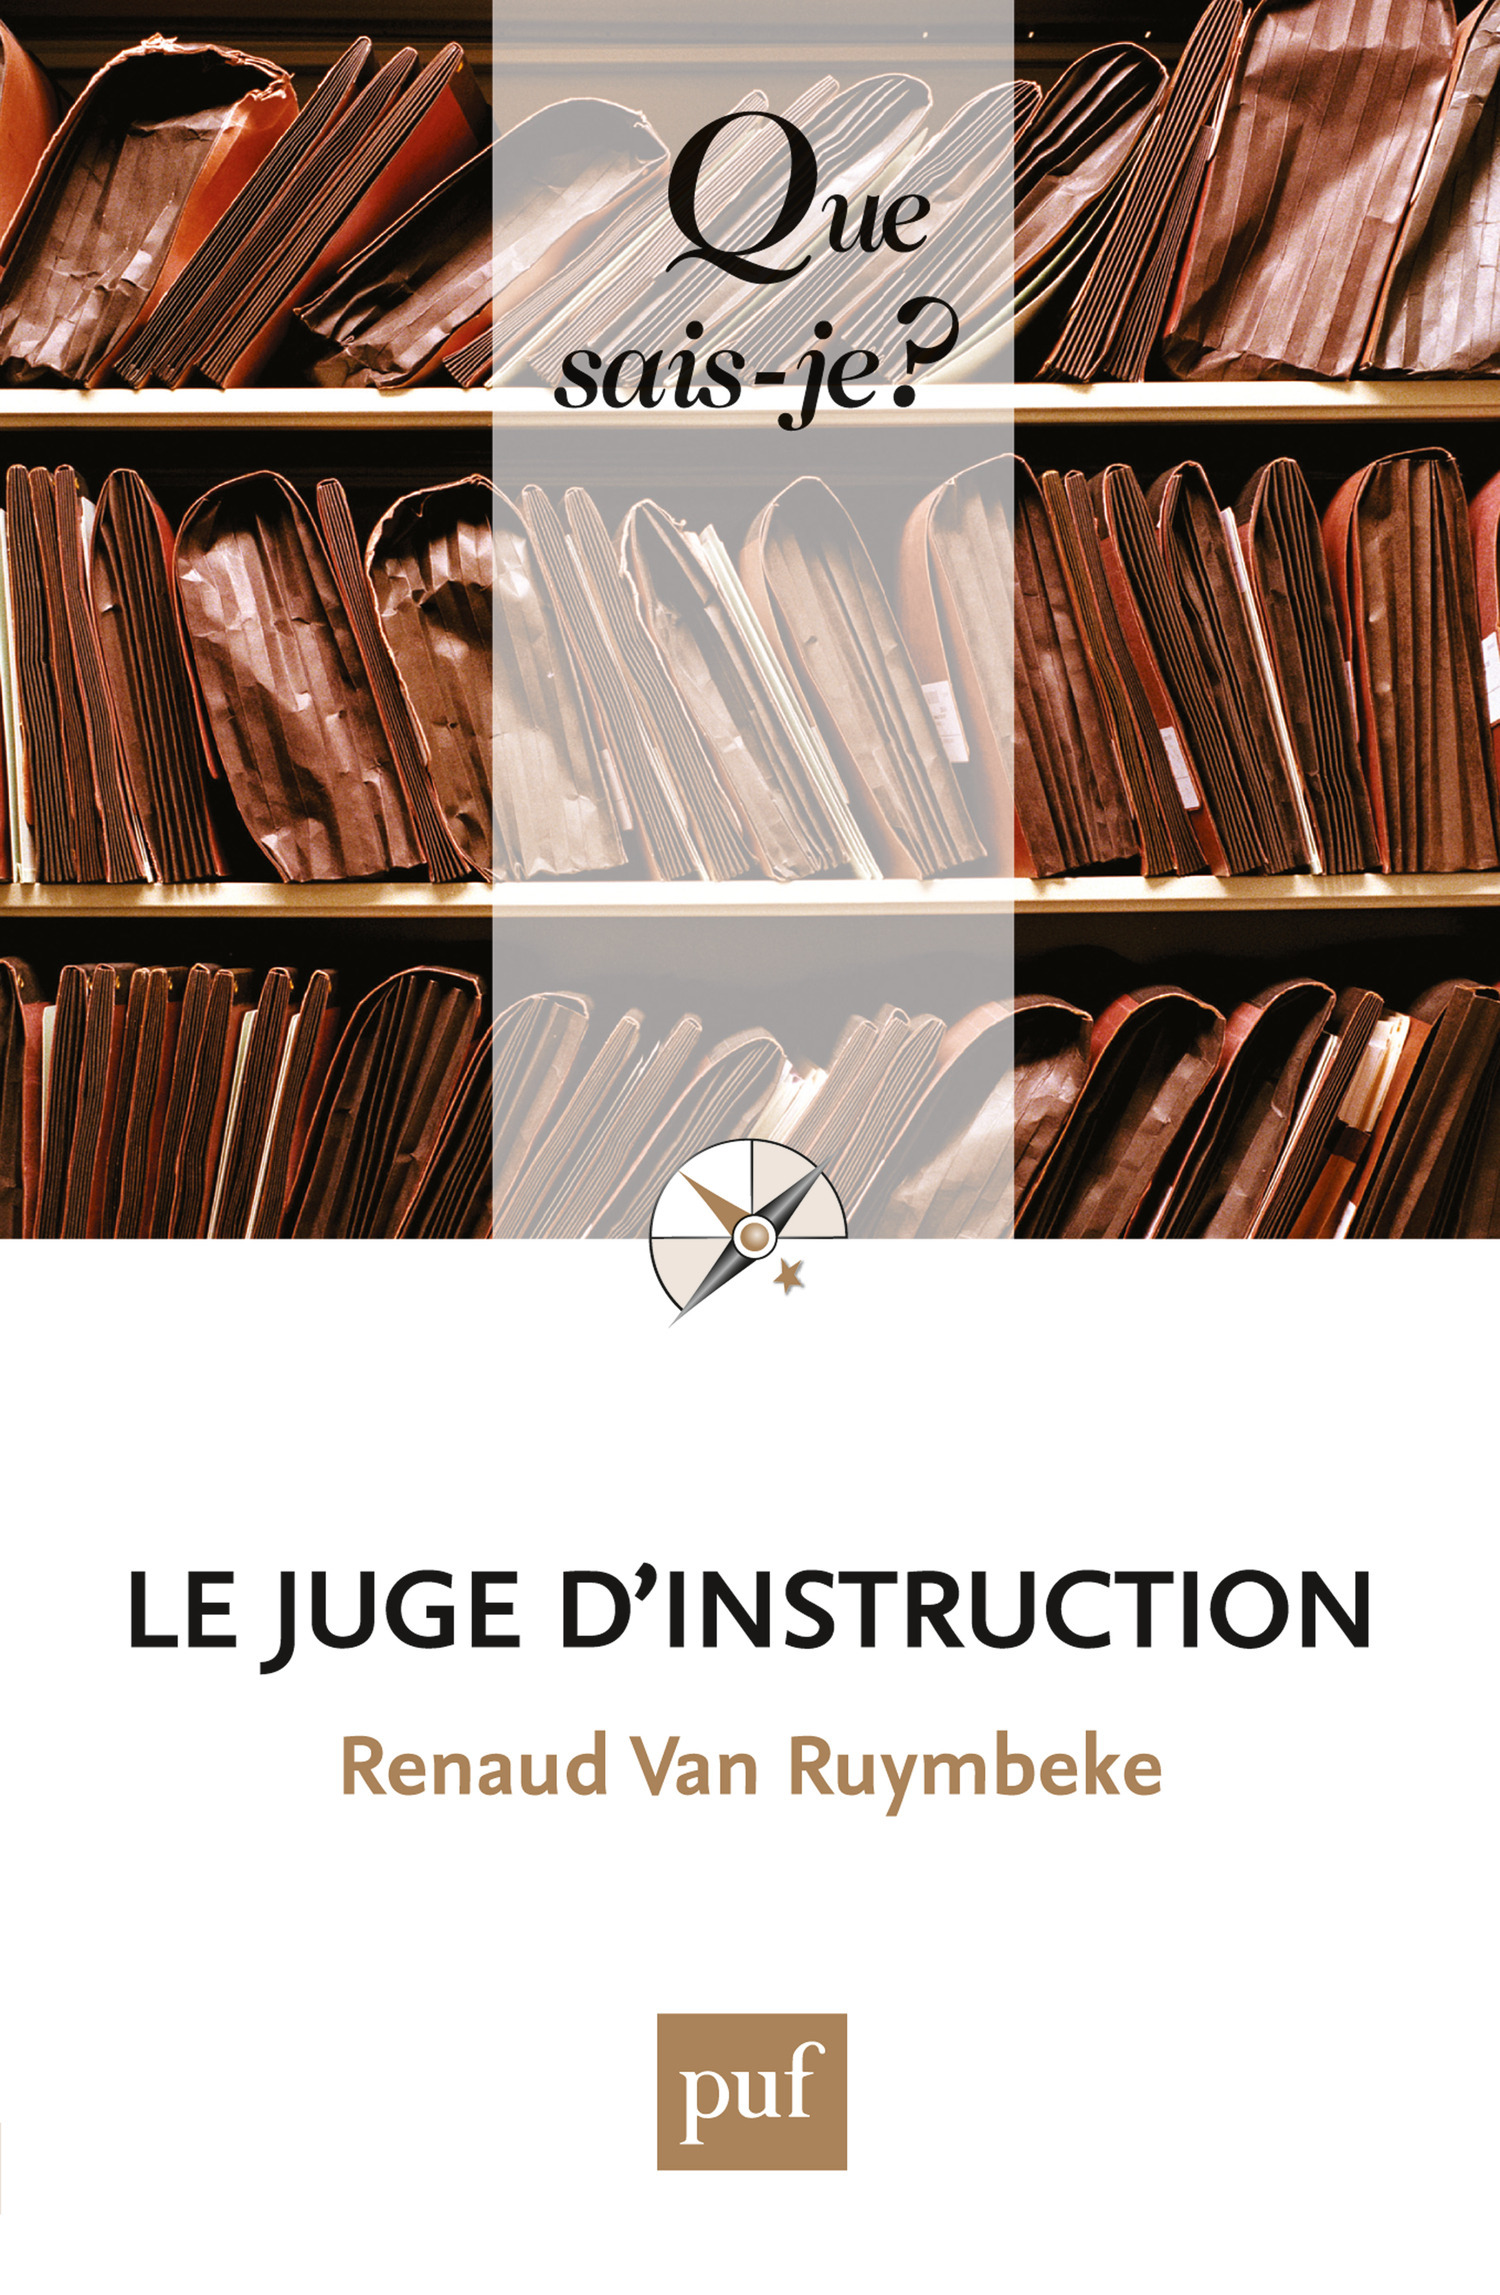 Renaud Van Ruymbeke Le juge d'instruction